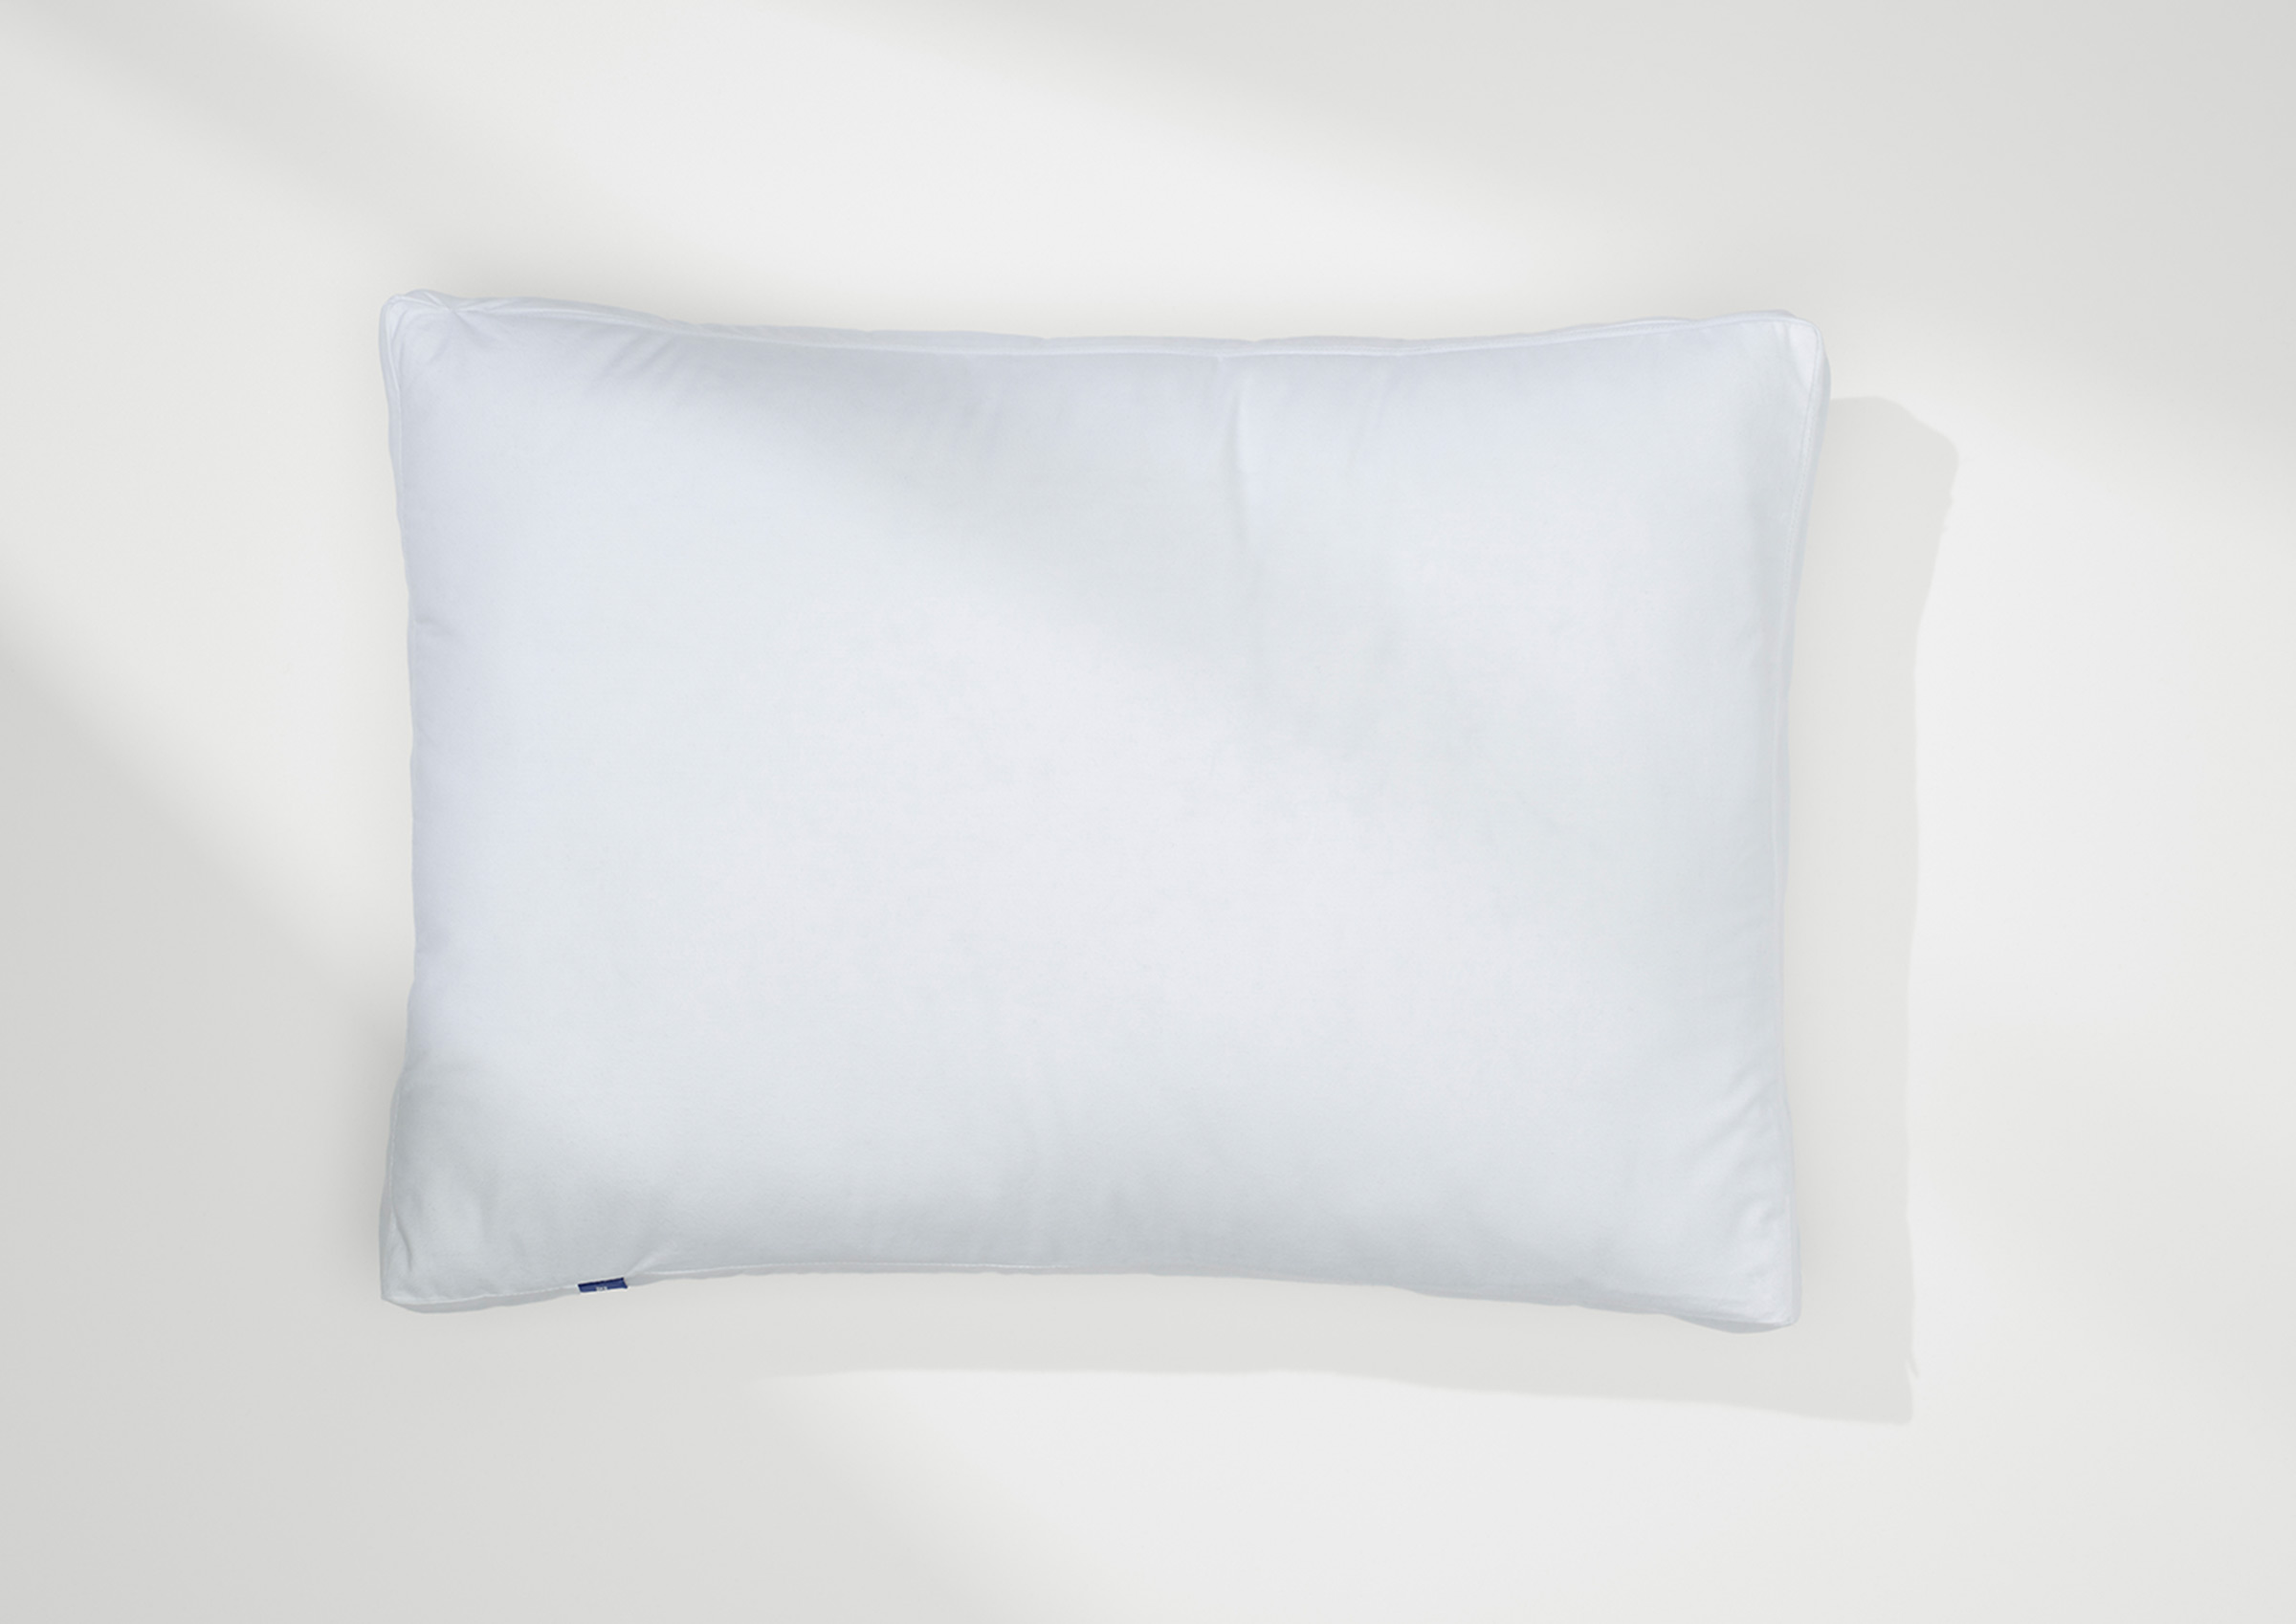 Best Pillows Australia Bed Pillows Casper